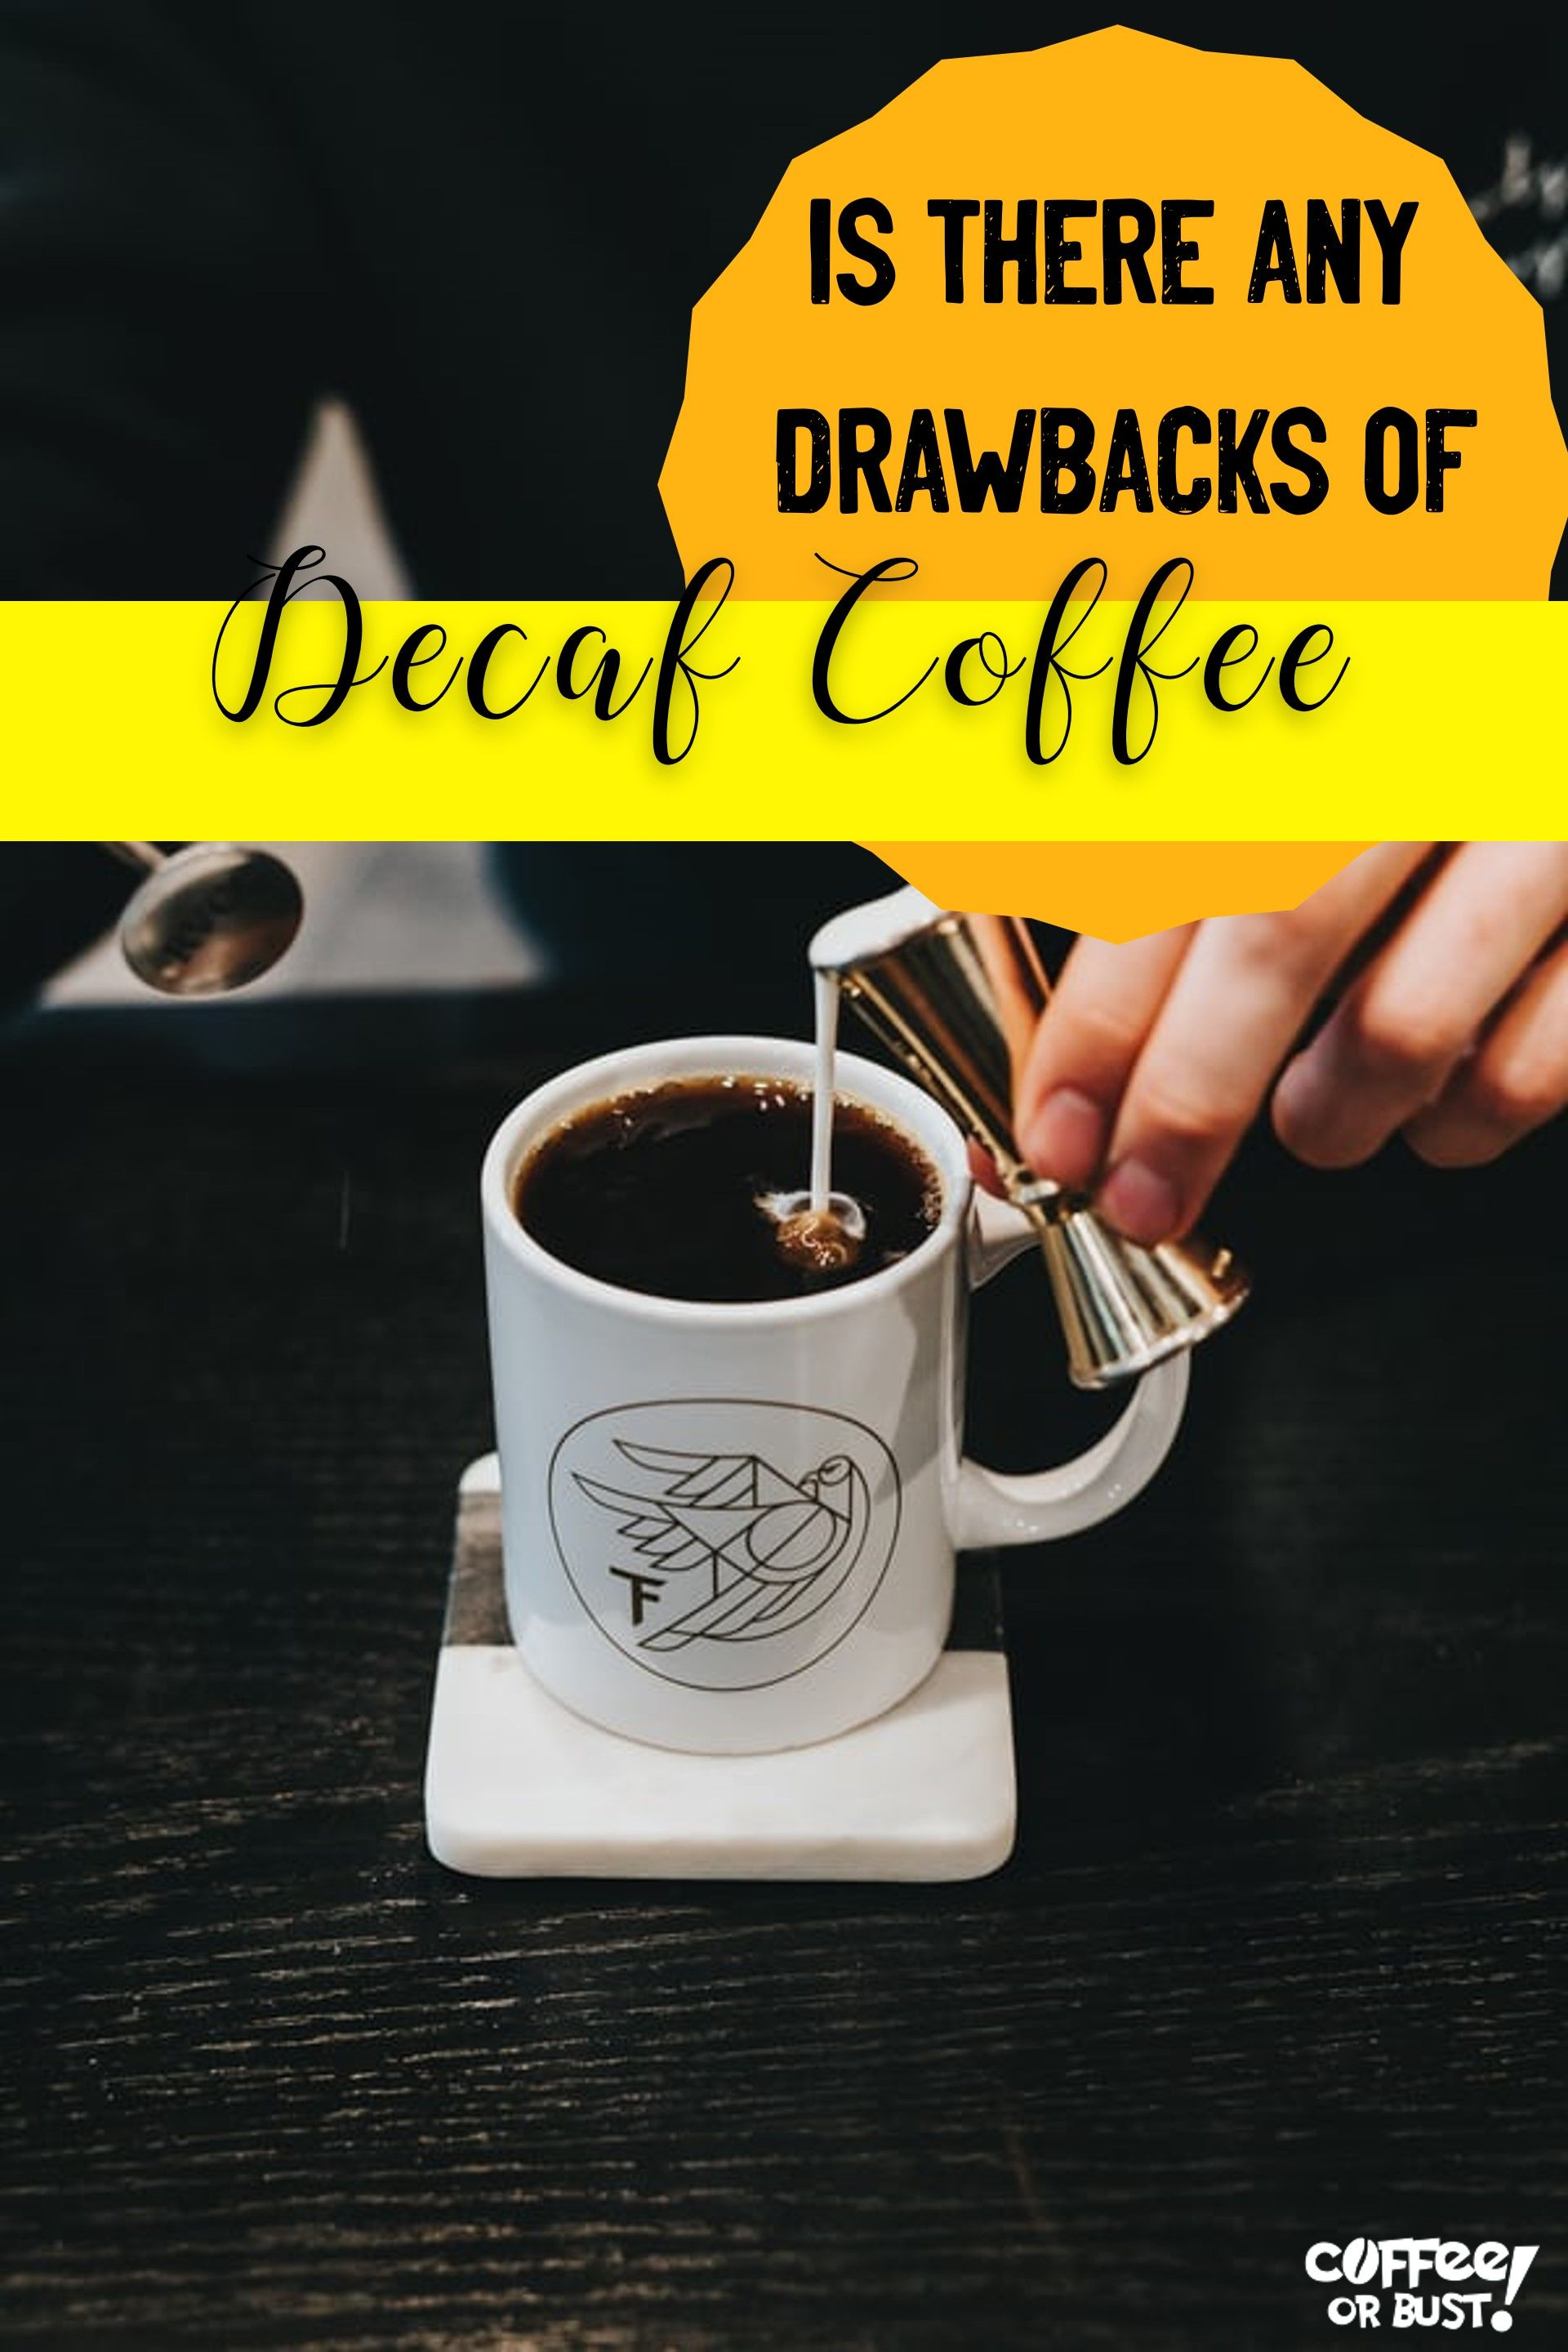 Best Decaf Coffee Beans In 2021 Updated Coffee Or Bust Decaf Coffee Beans Decaf Coffee Coffee Beans